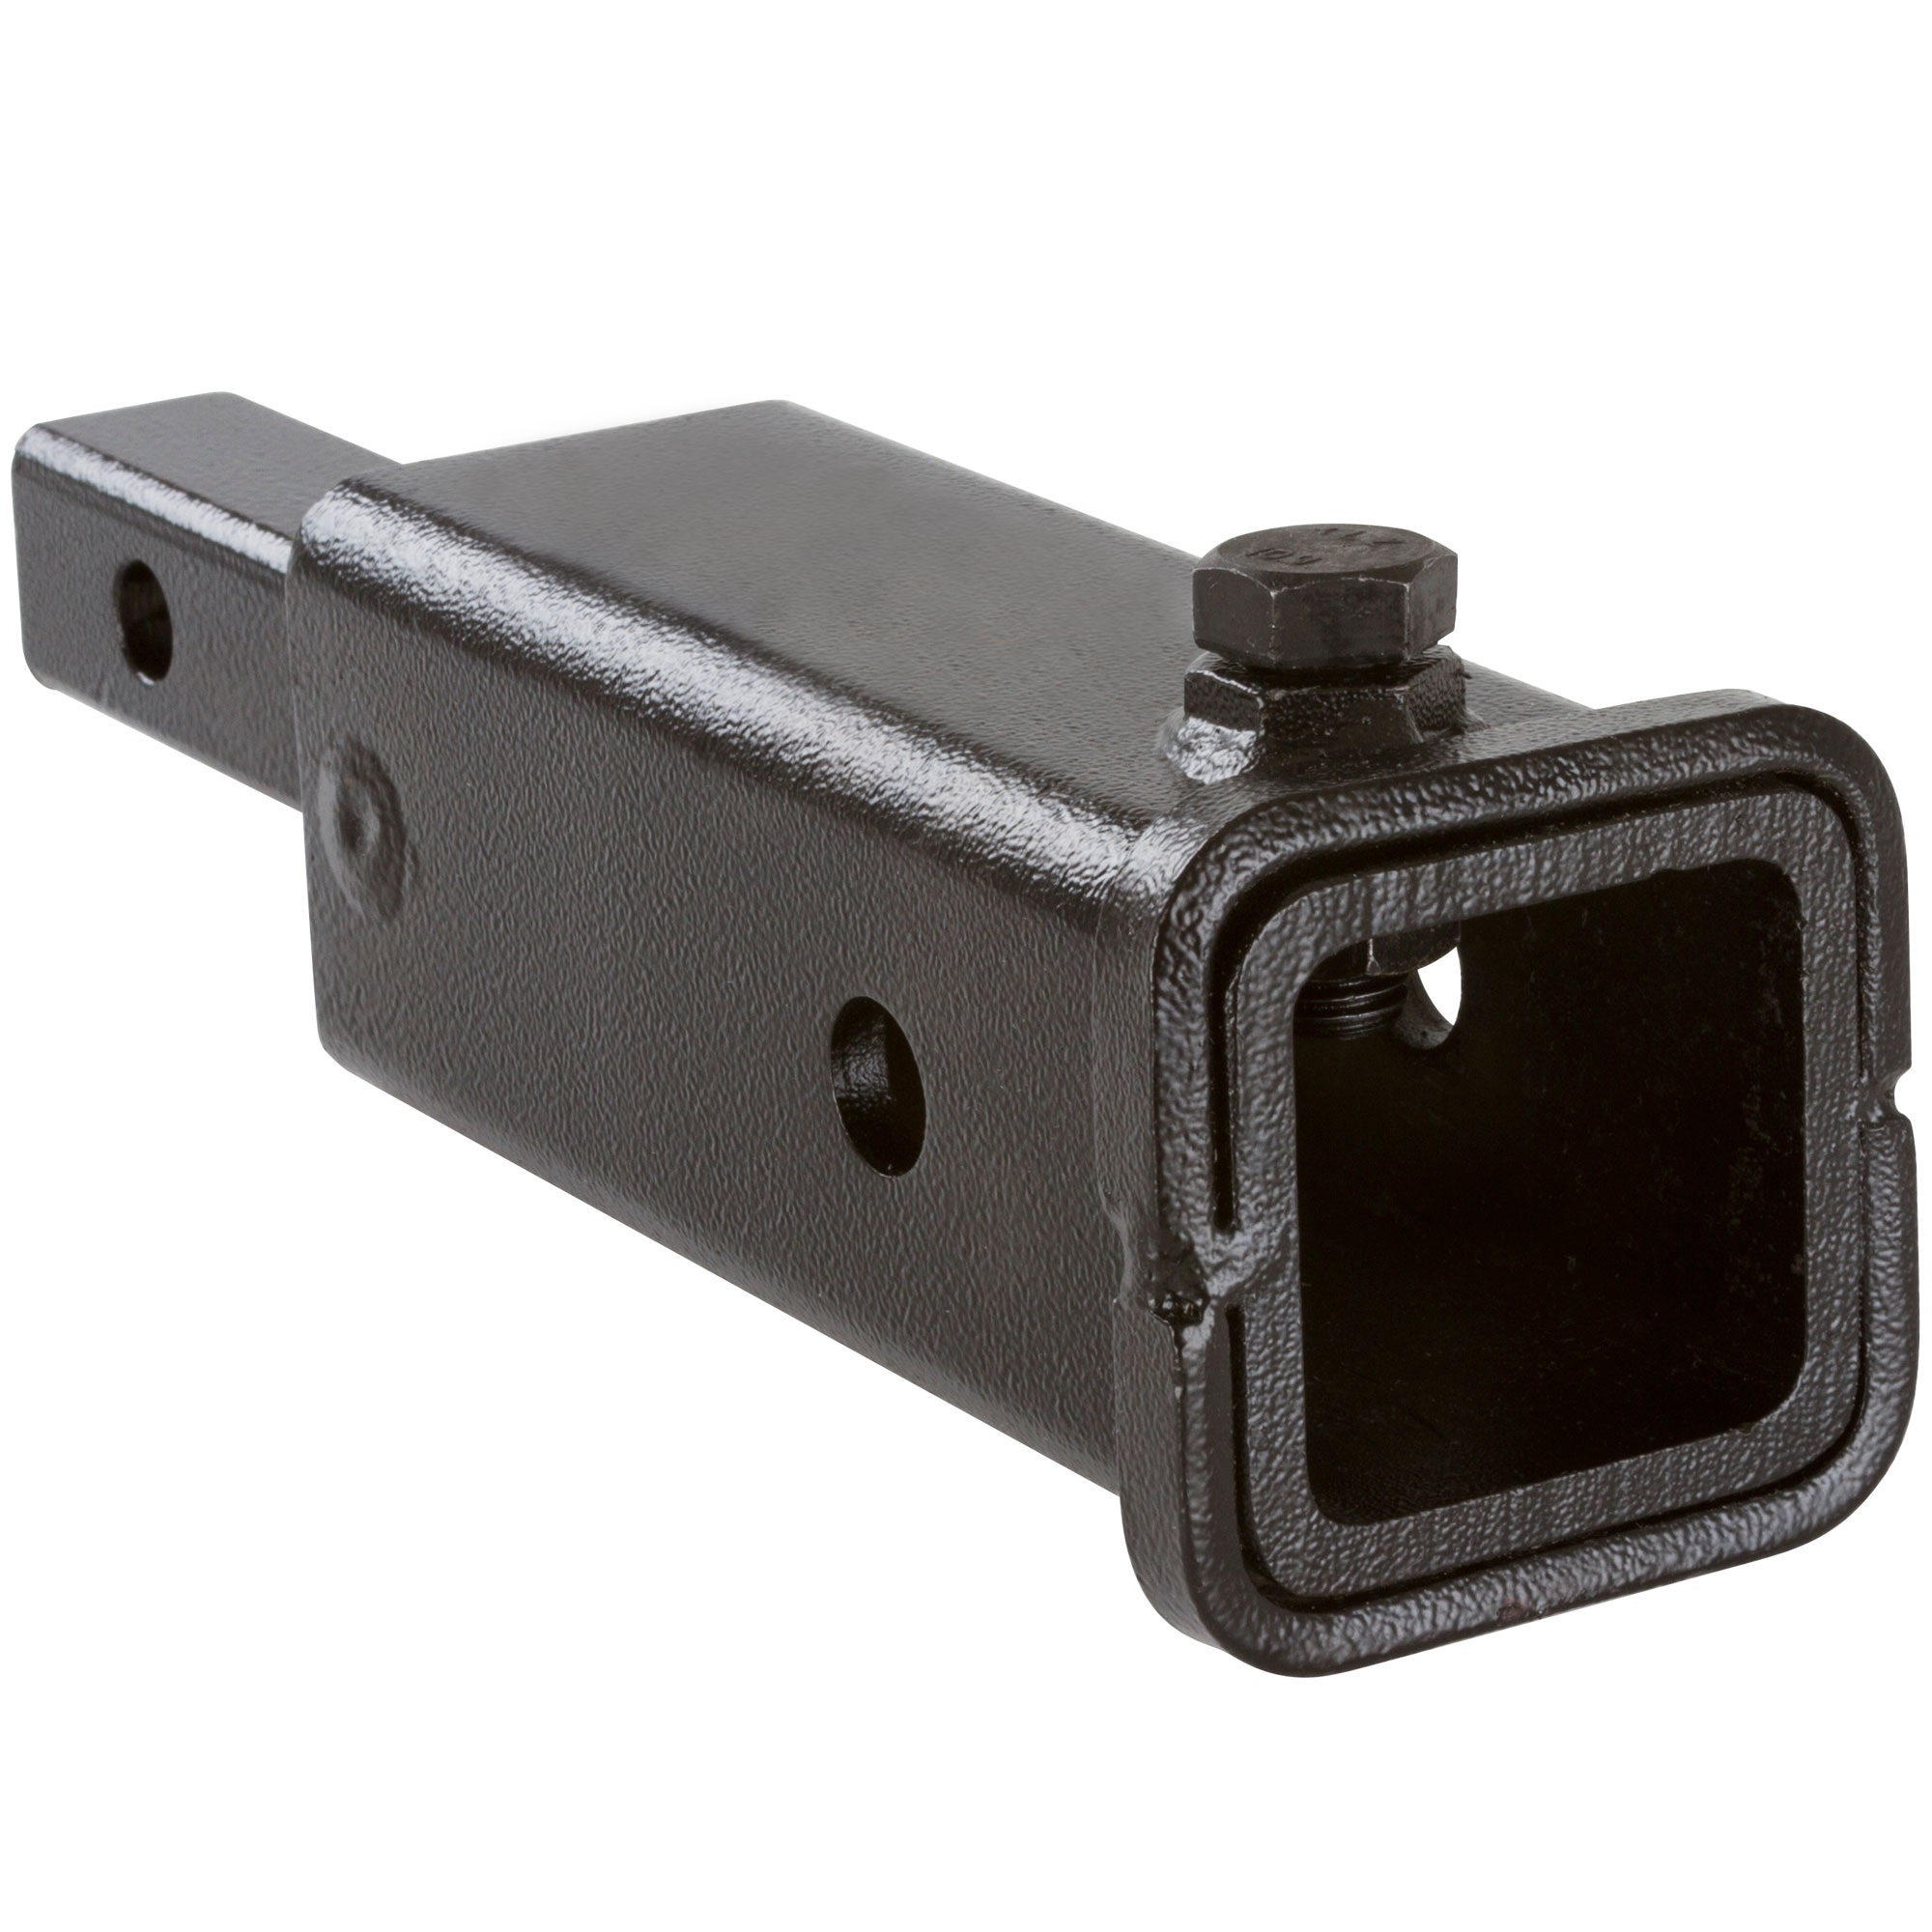 "1-1 4"" to 2"" Trailer Hitch Adapter with Anti-Tilt Bolt by Apex"